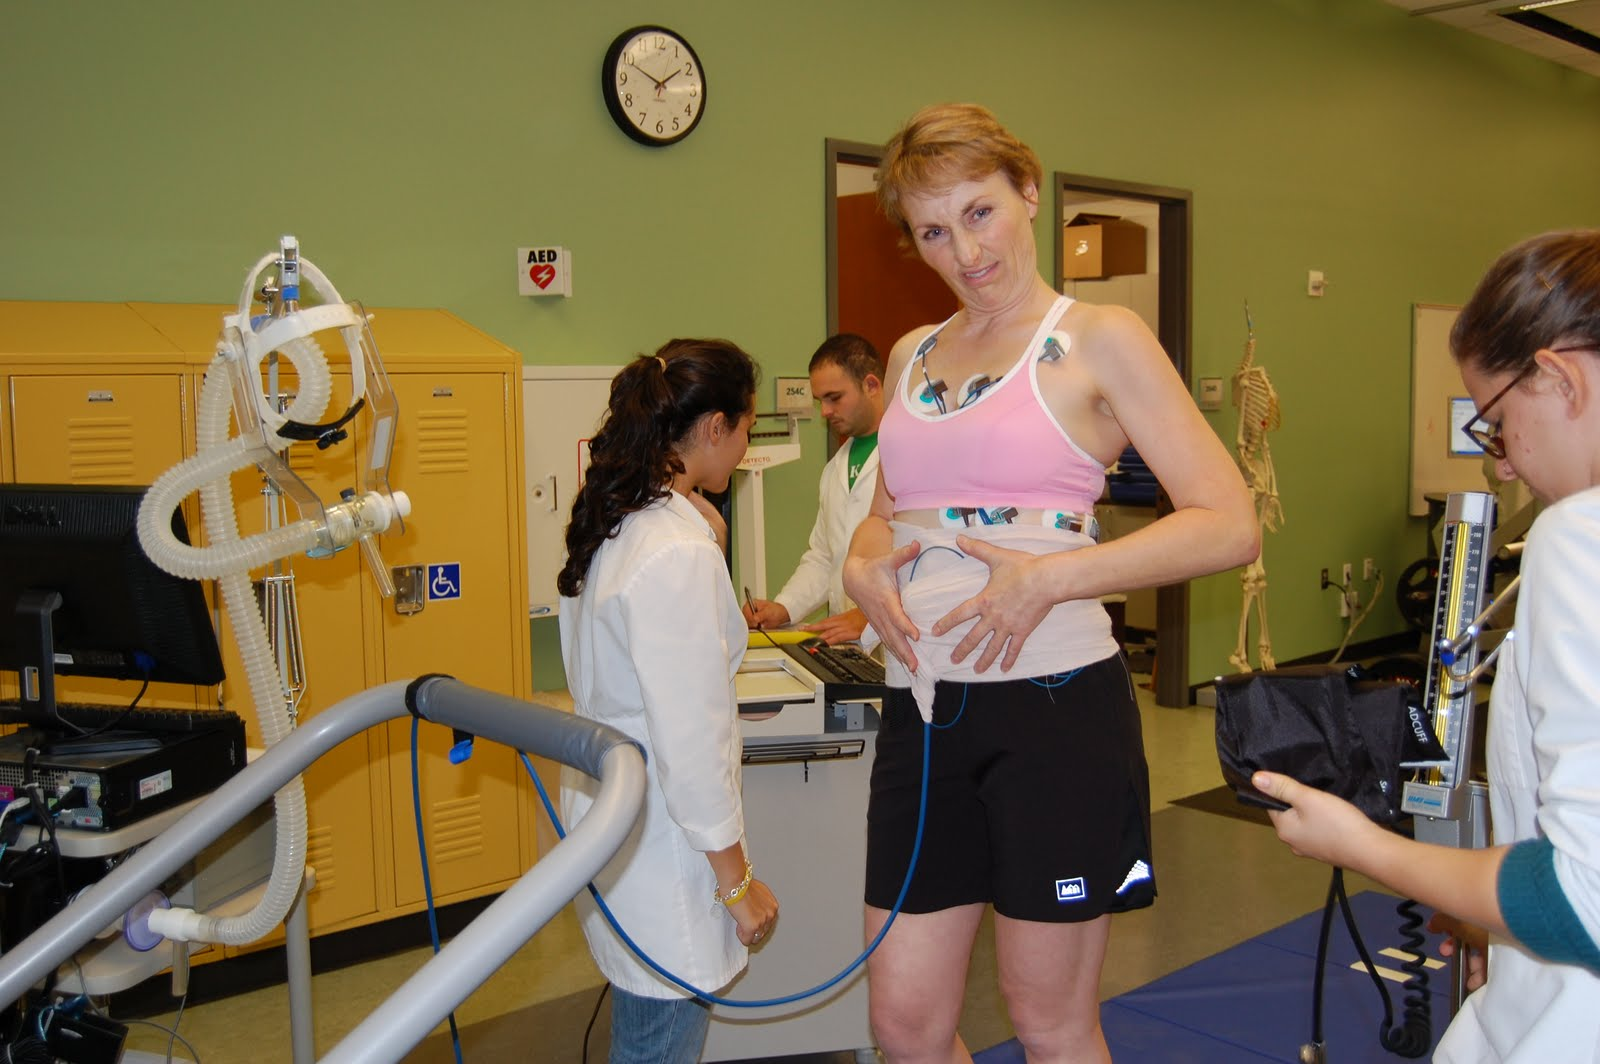 Fatozzig S Place Body Composition And Vo2 Max Test